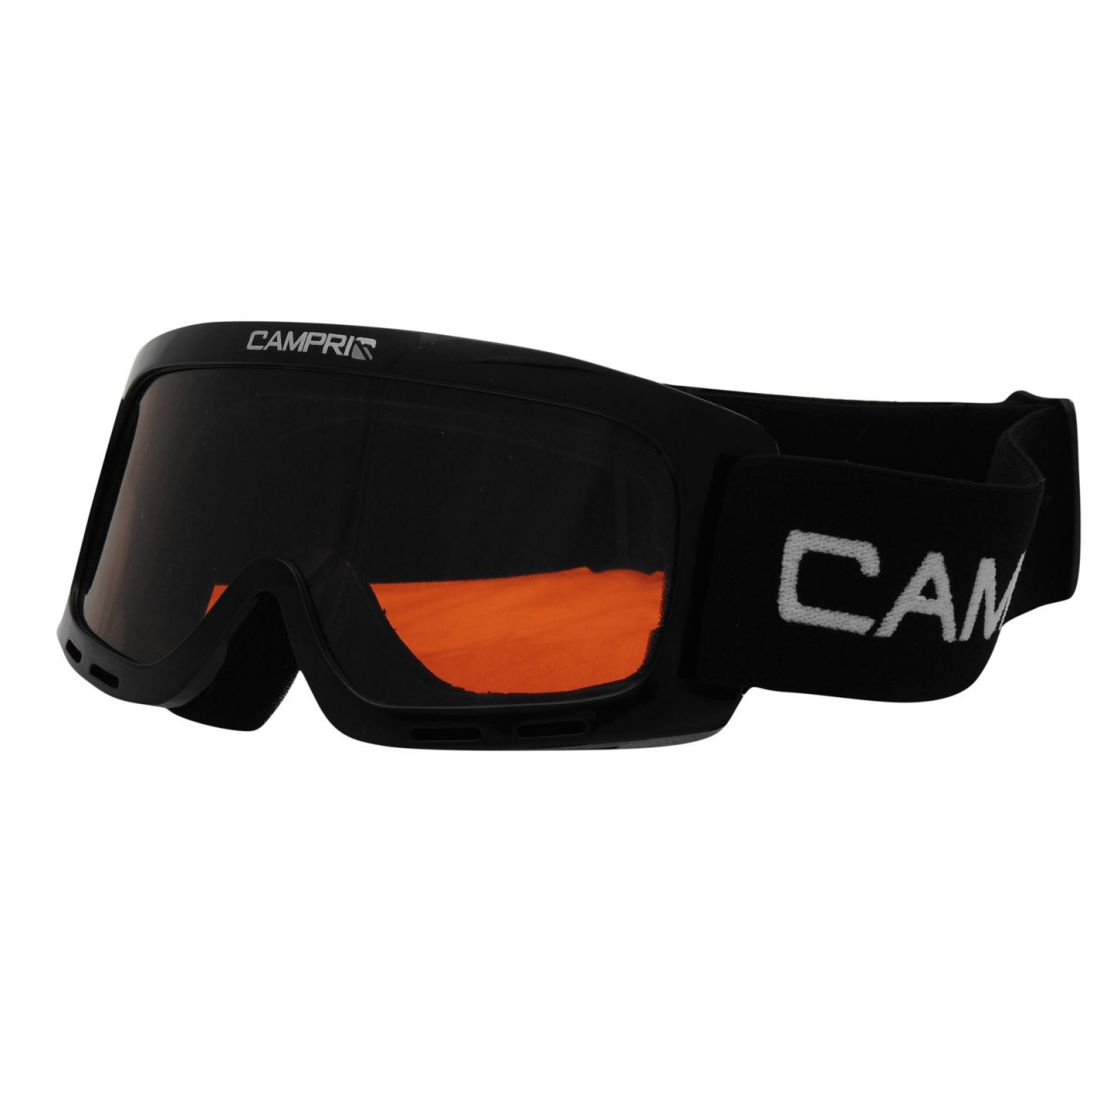 fec5eb411d8 Image is loading Campri-Star-Ski-Goggles-Youngster-Childrens